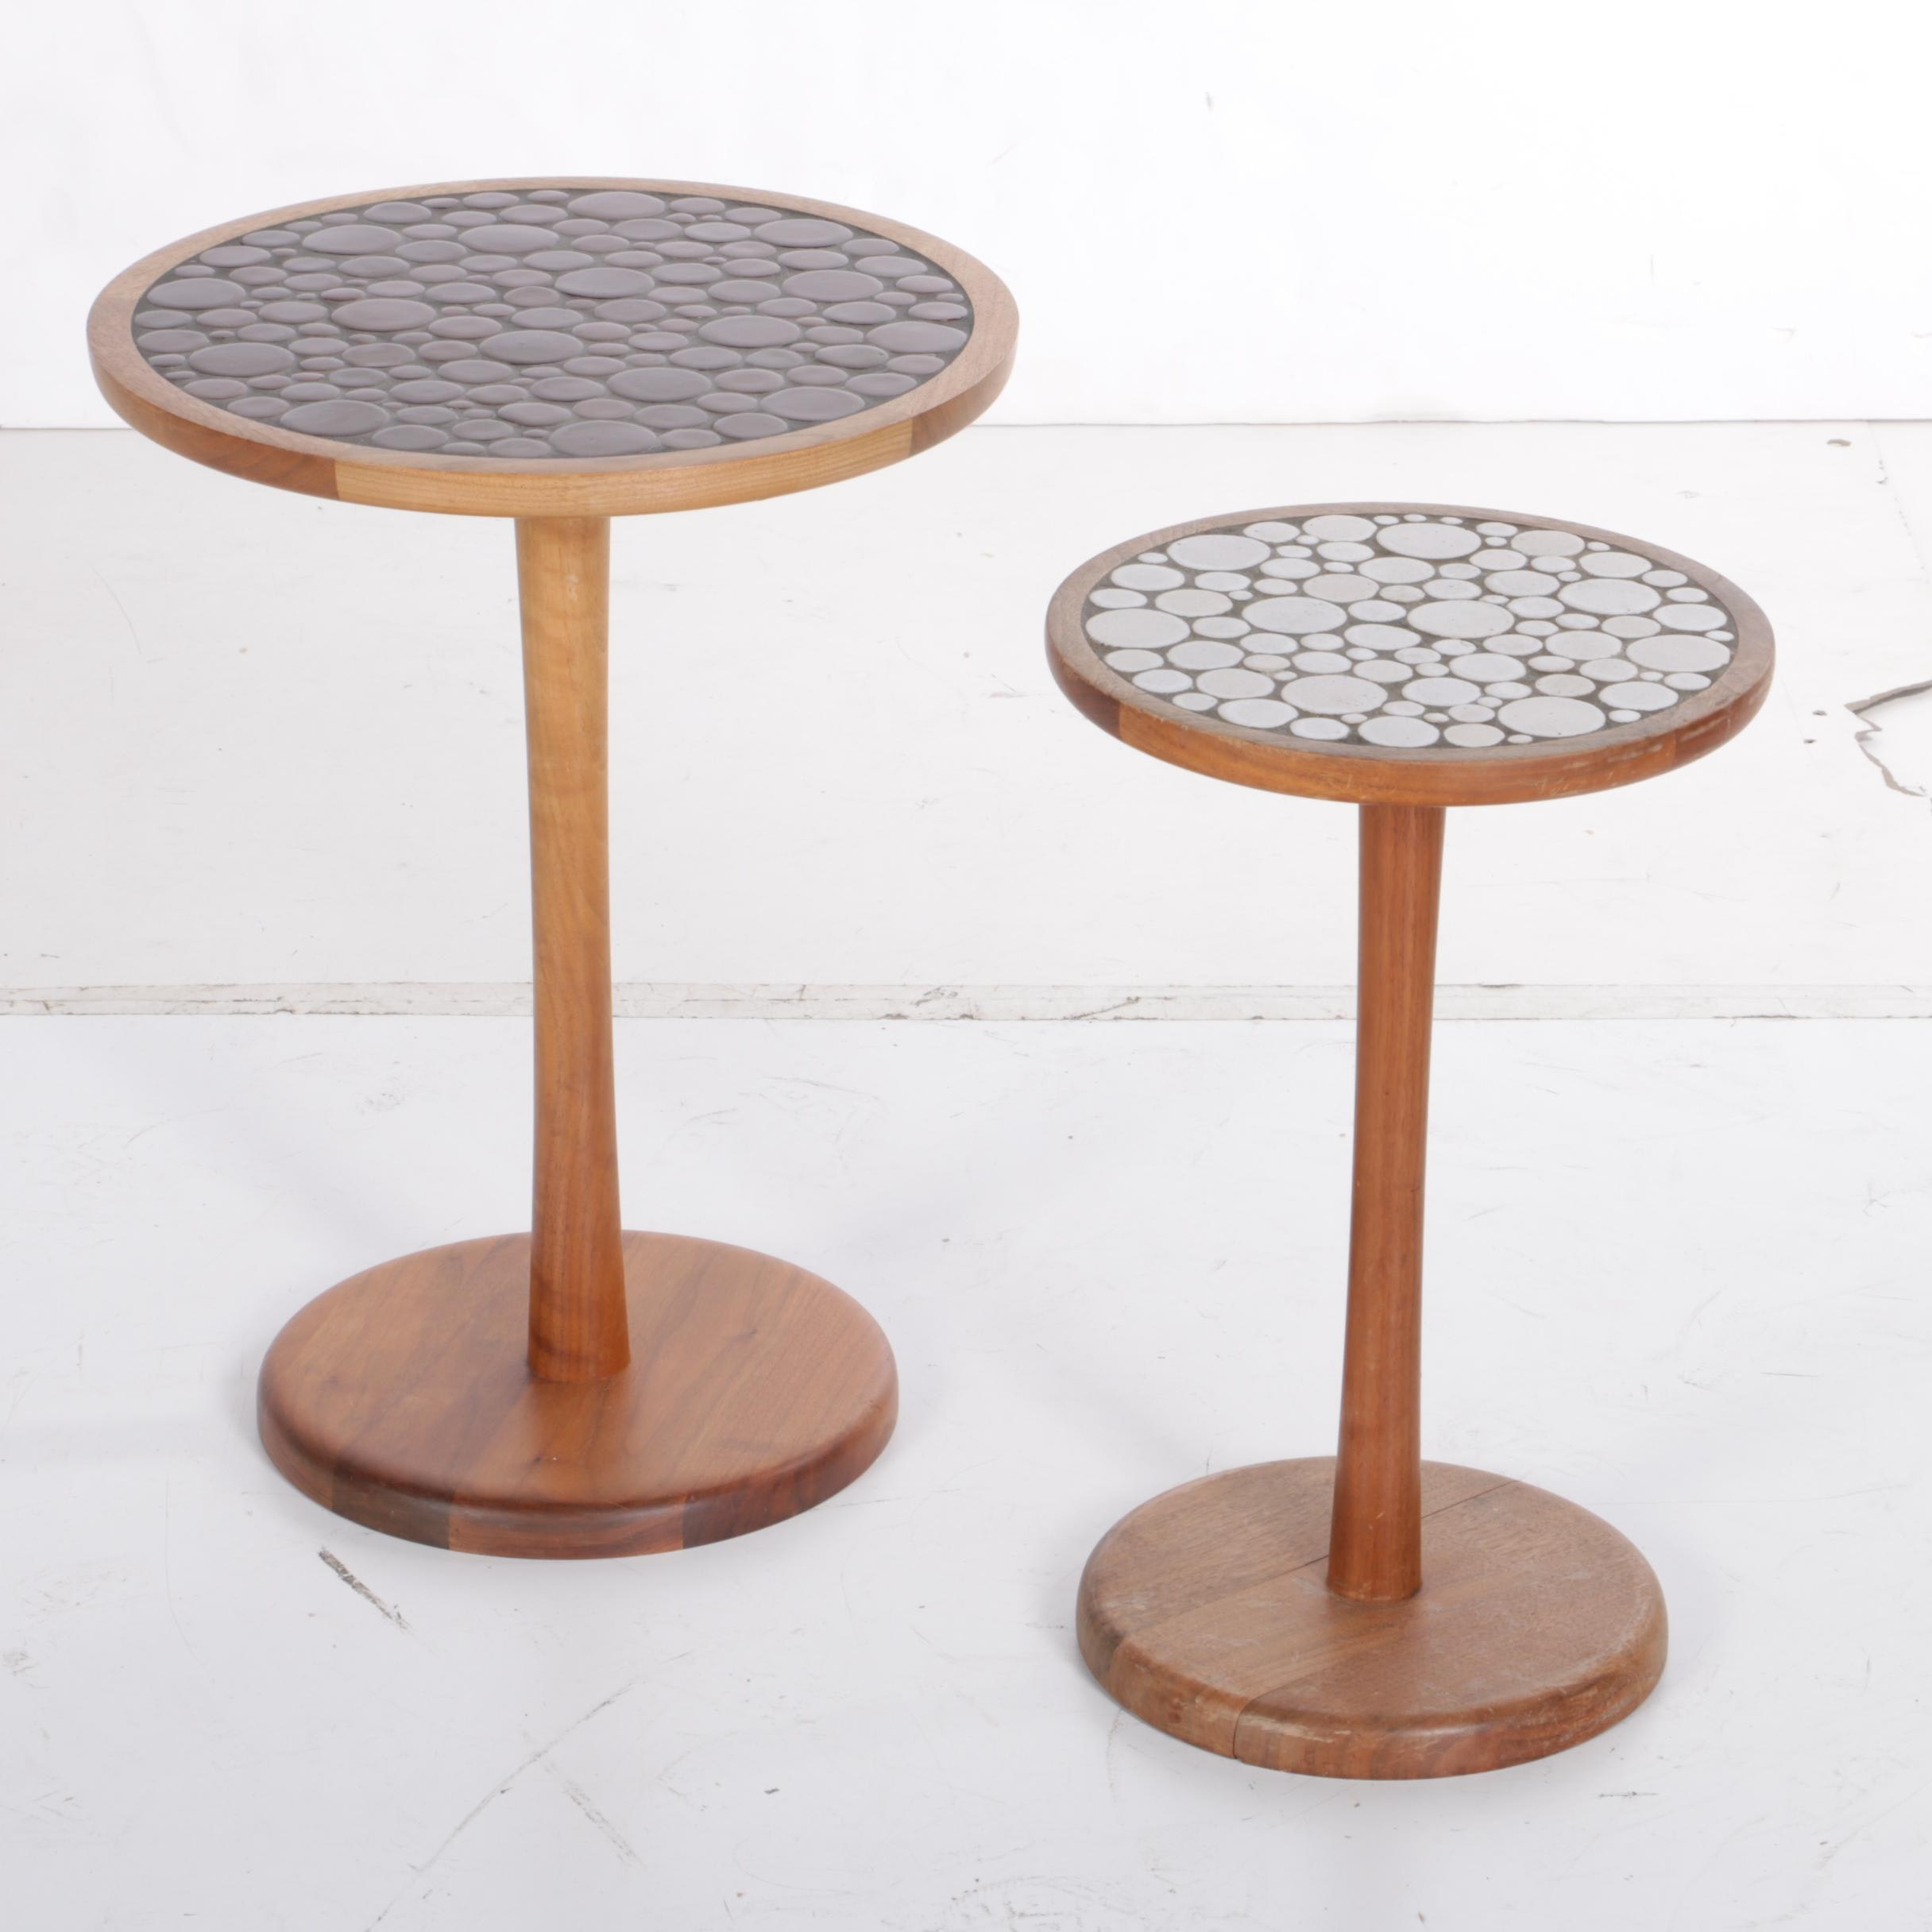 Martz Style Mid Century Modern Teak and Mosaic Accent Tables